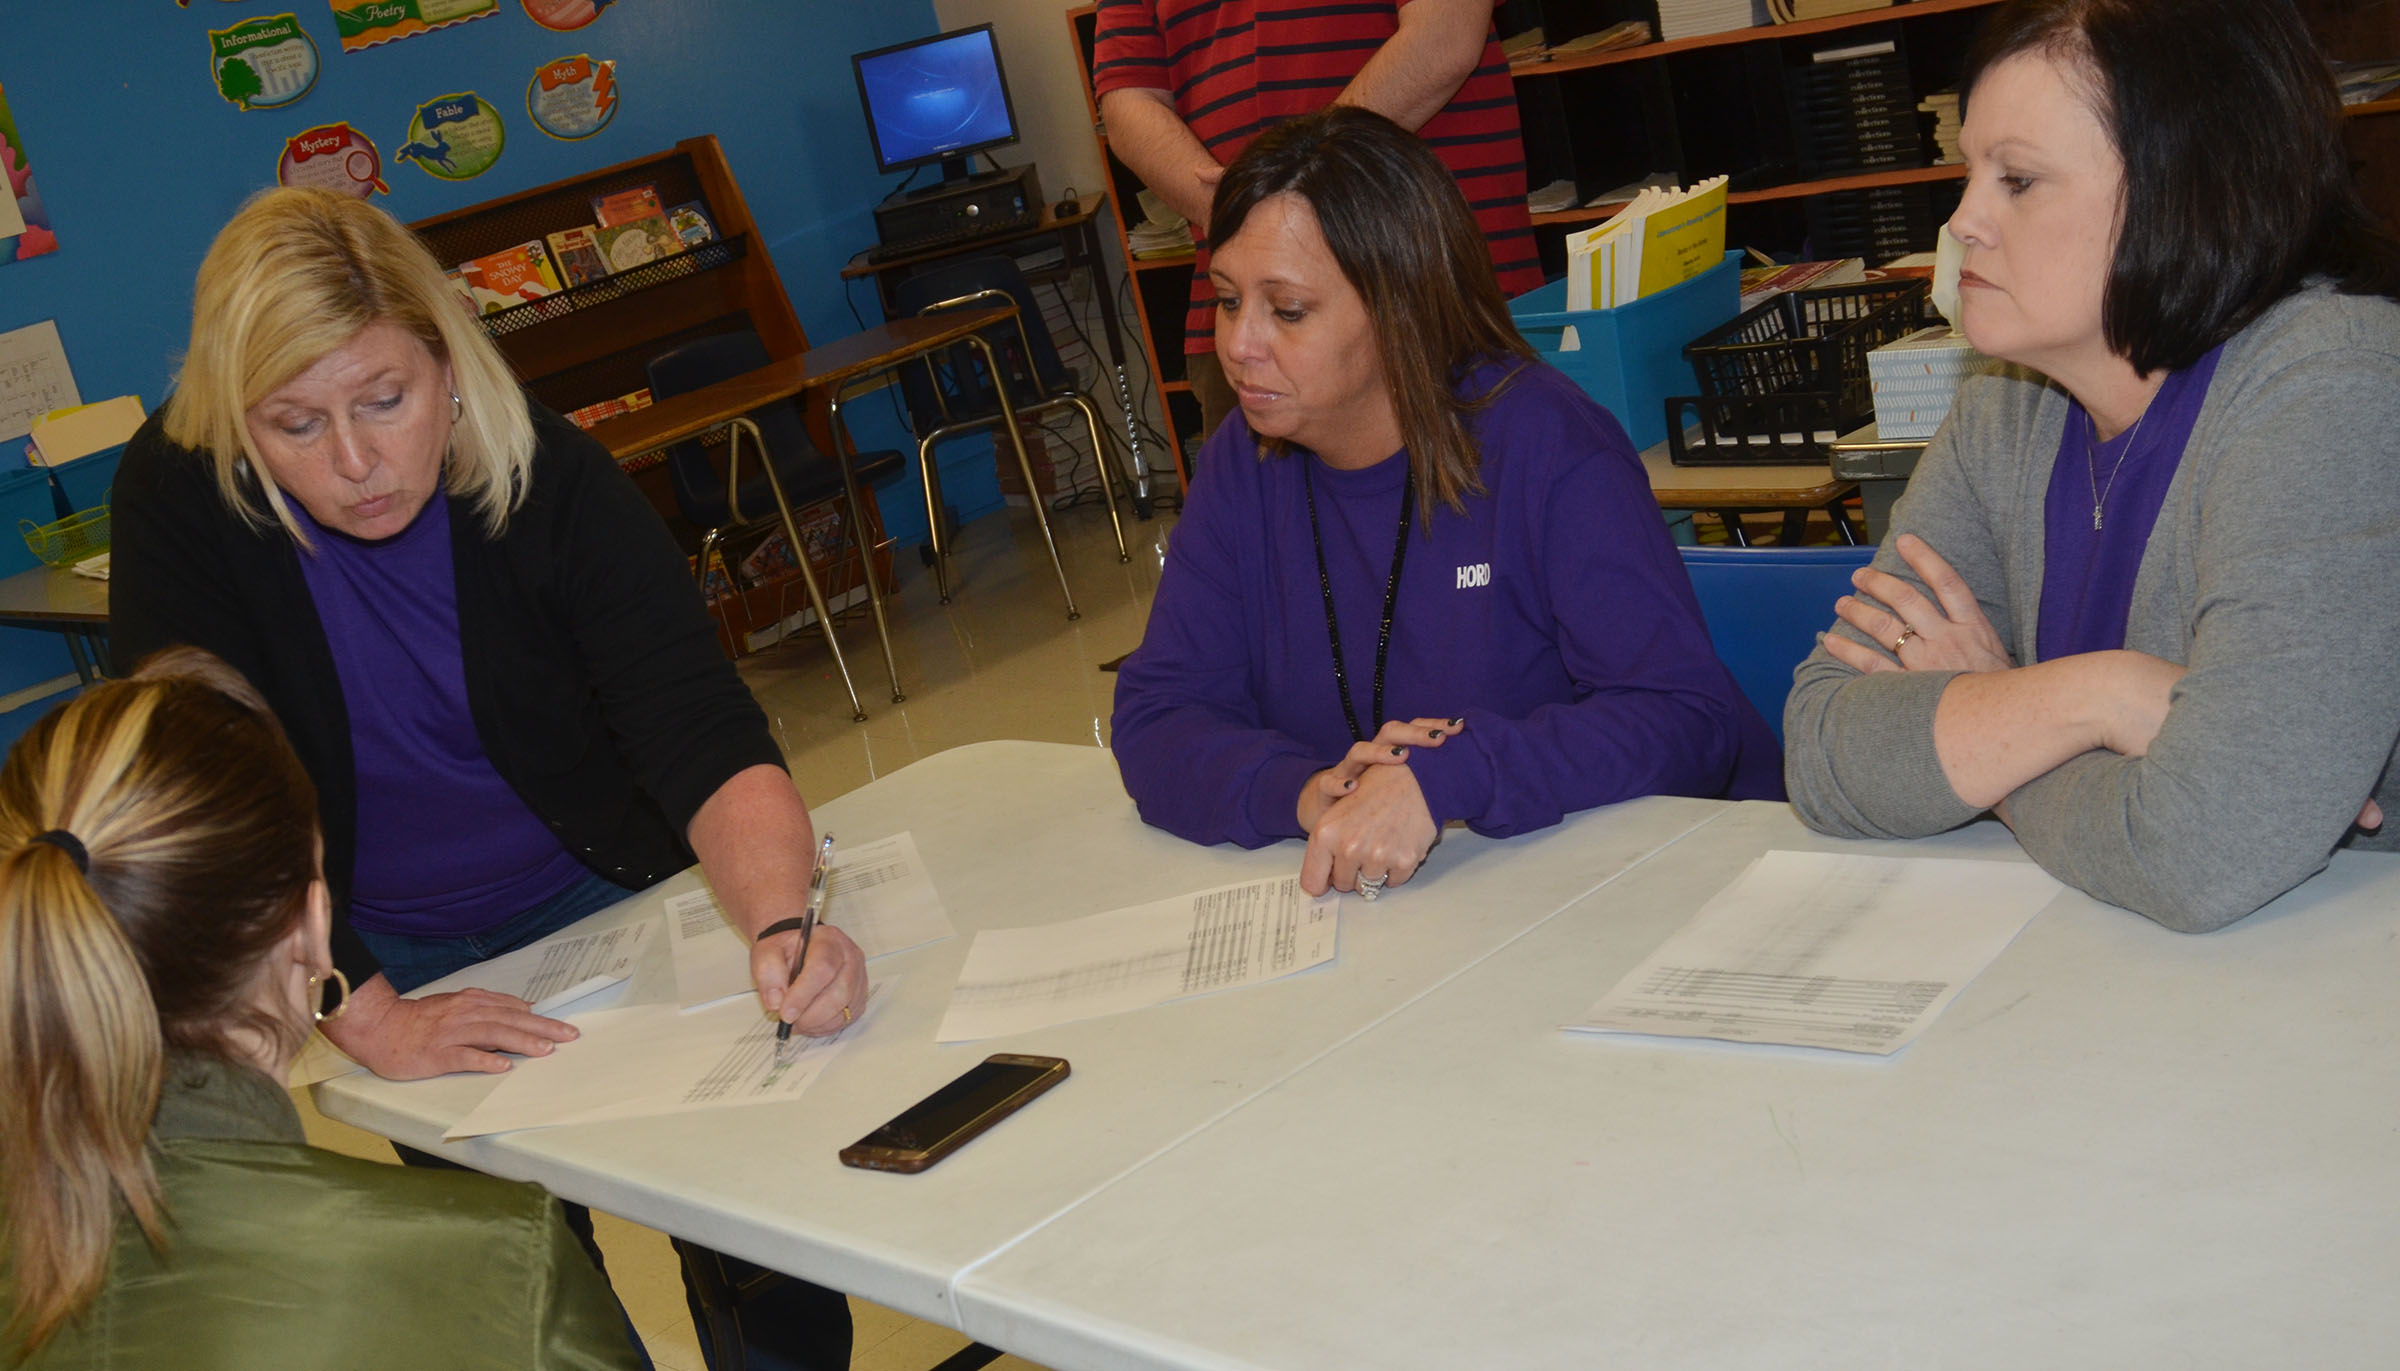 CMS sixth-grade teachers, from left, Jan Speer, Farrah Hord and Lisa Kearney talk to a parent about her son's grades.